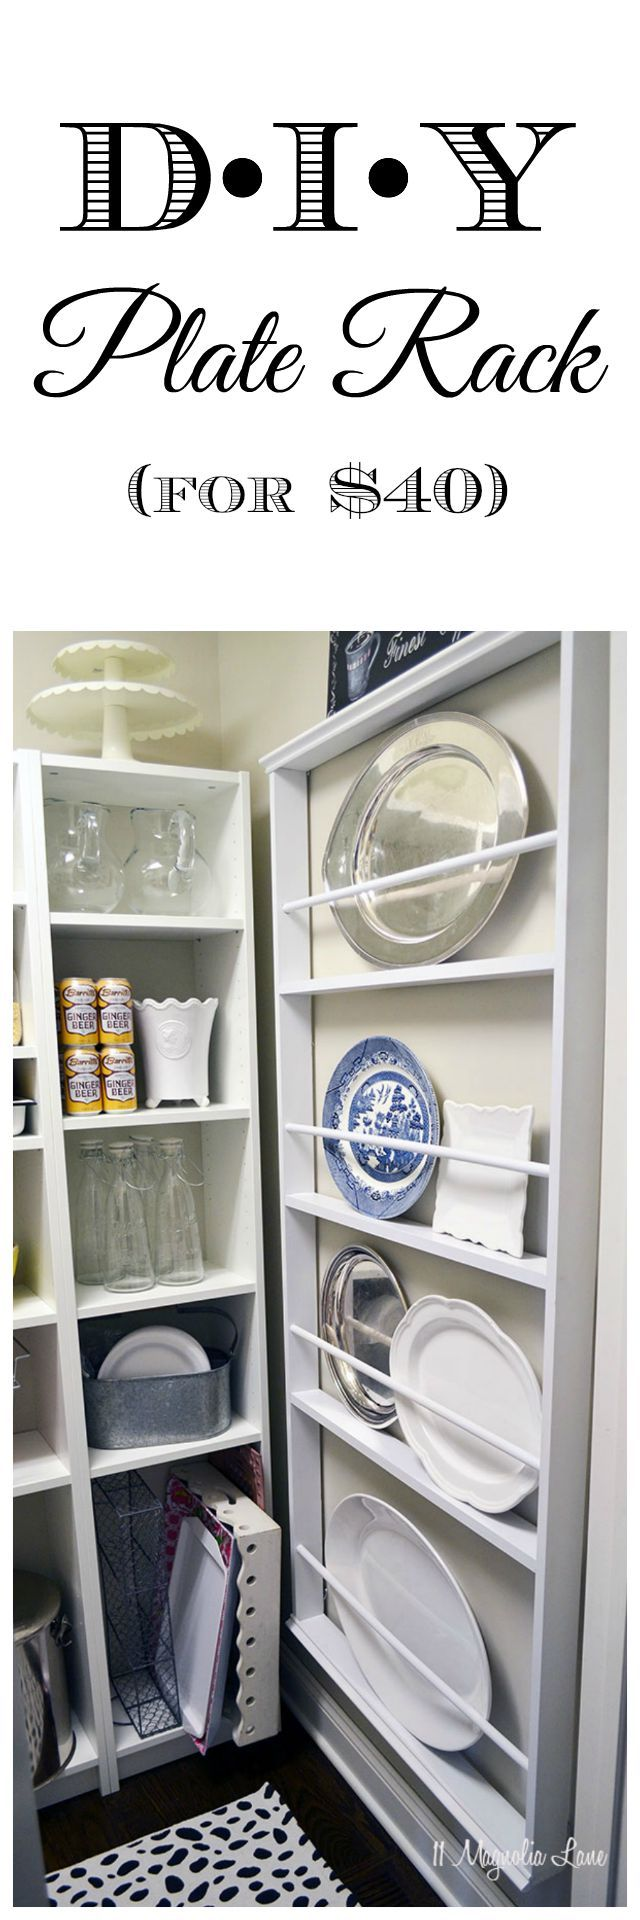 33155 best images about hometalk diy on pinterest for Funky shelving ideas